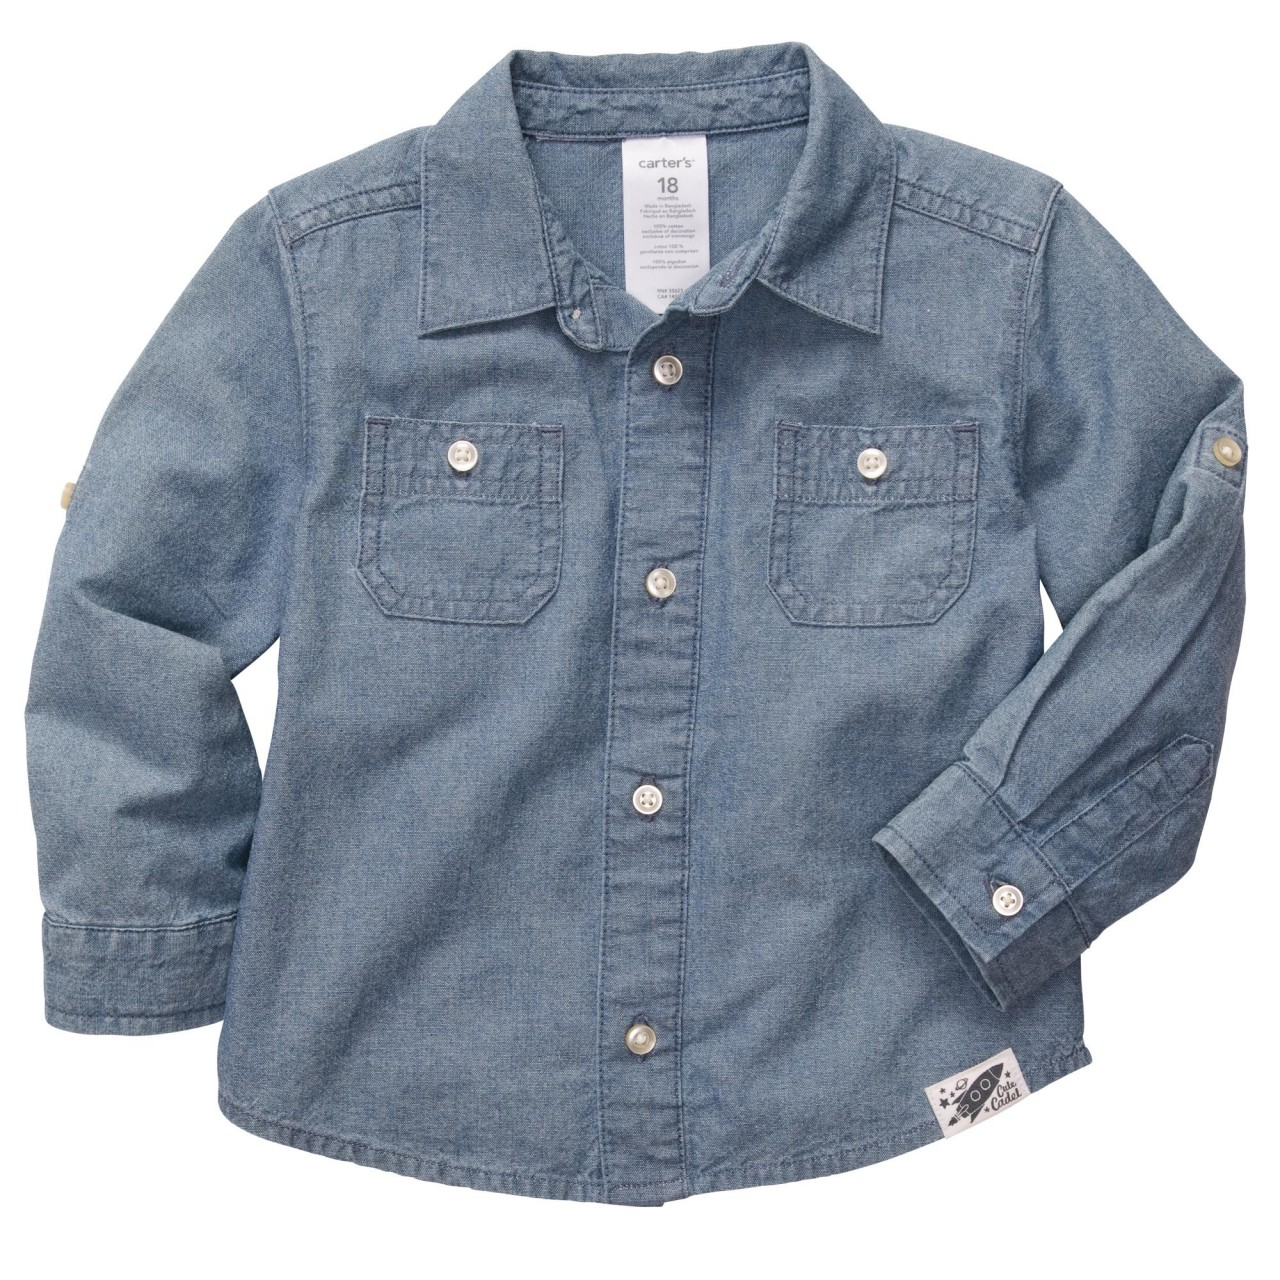 CAMISA CARTER'S JEANS CHAMBRAY